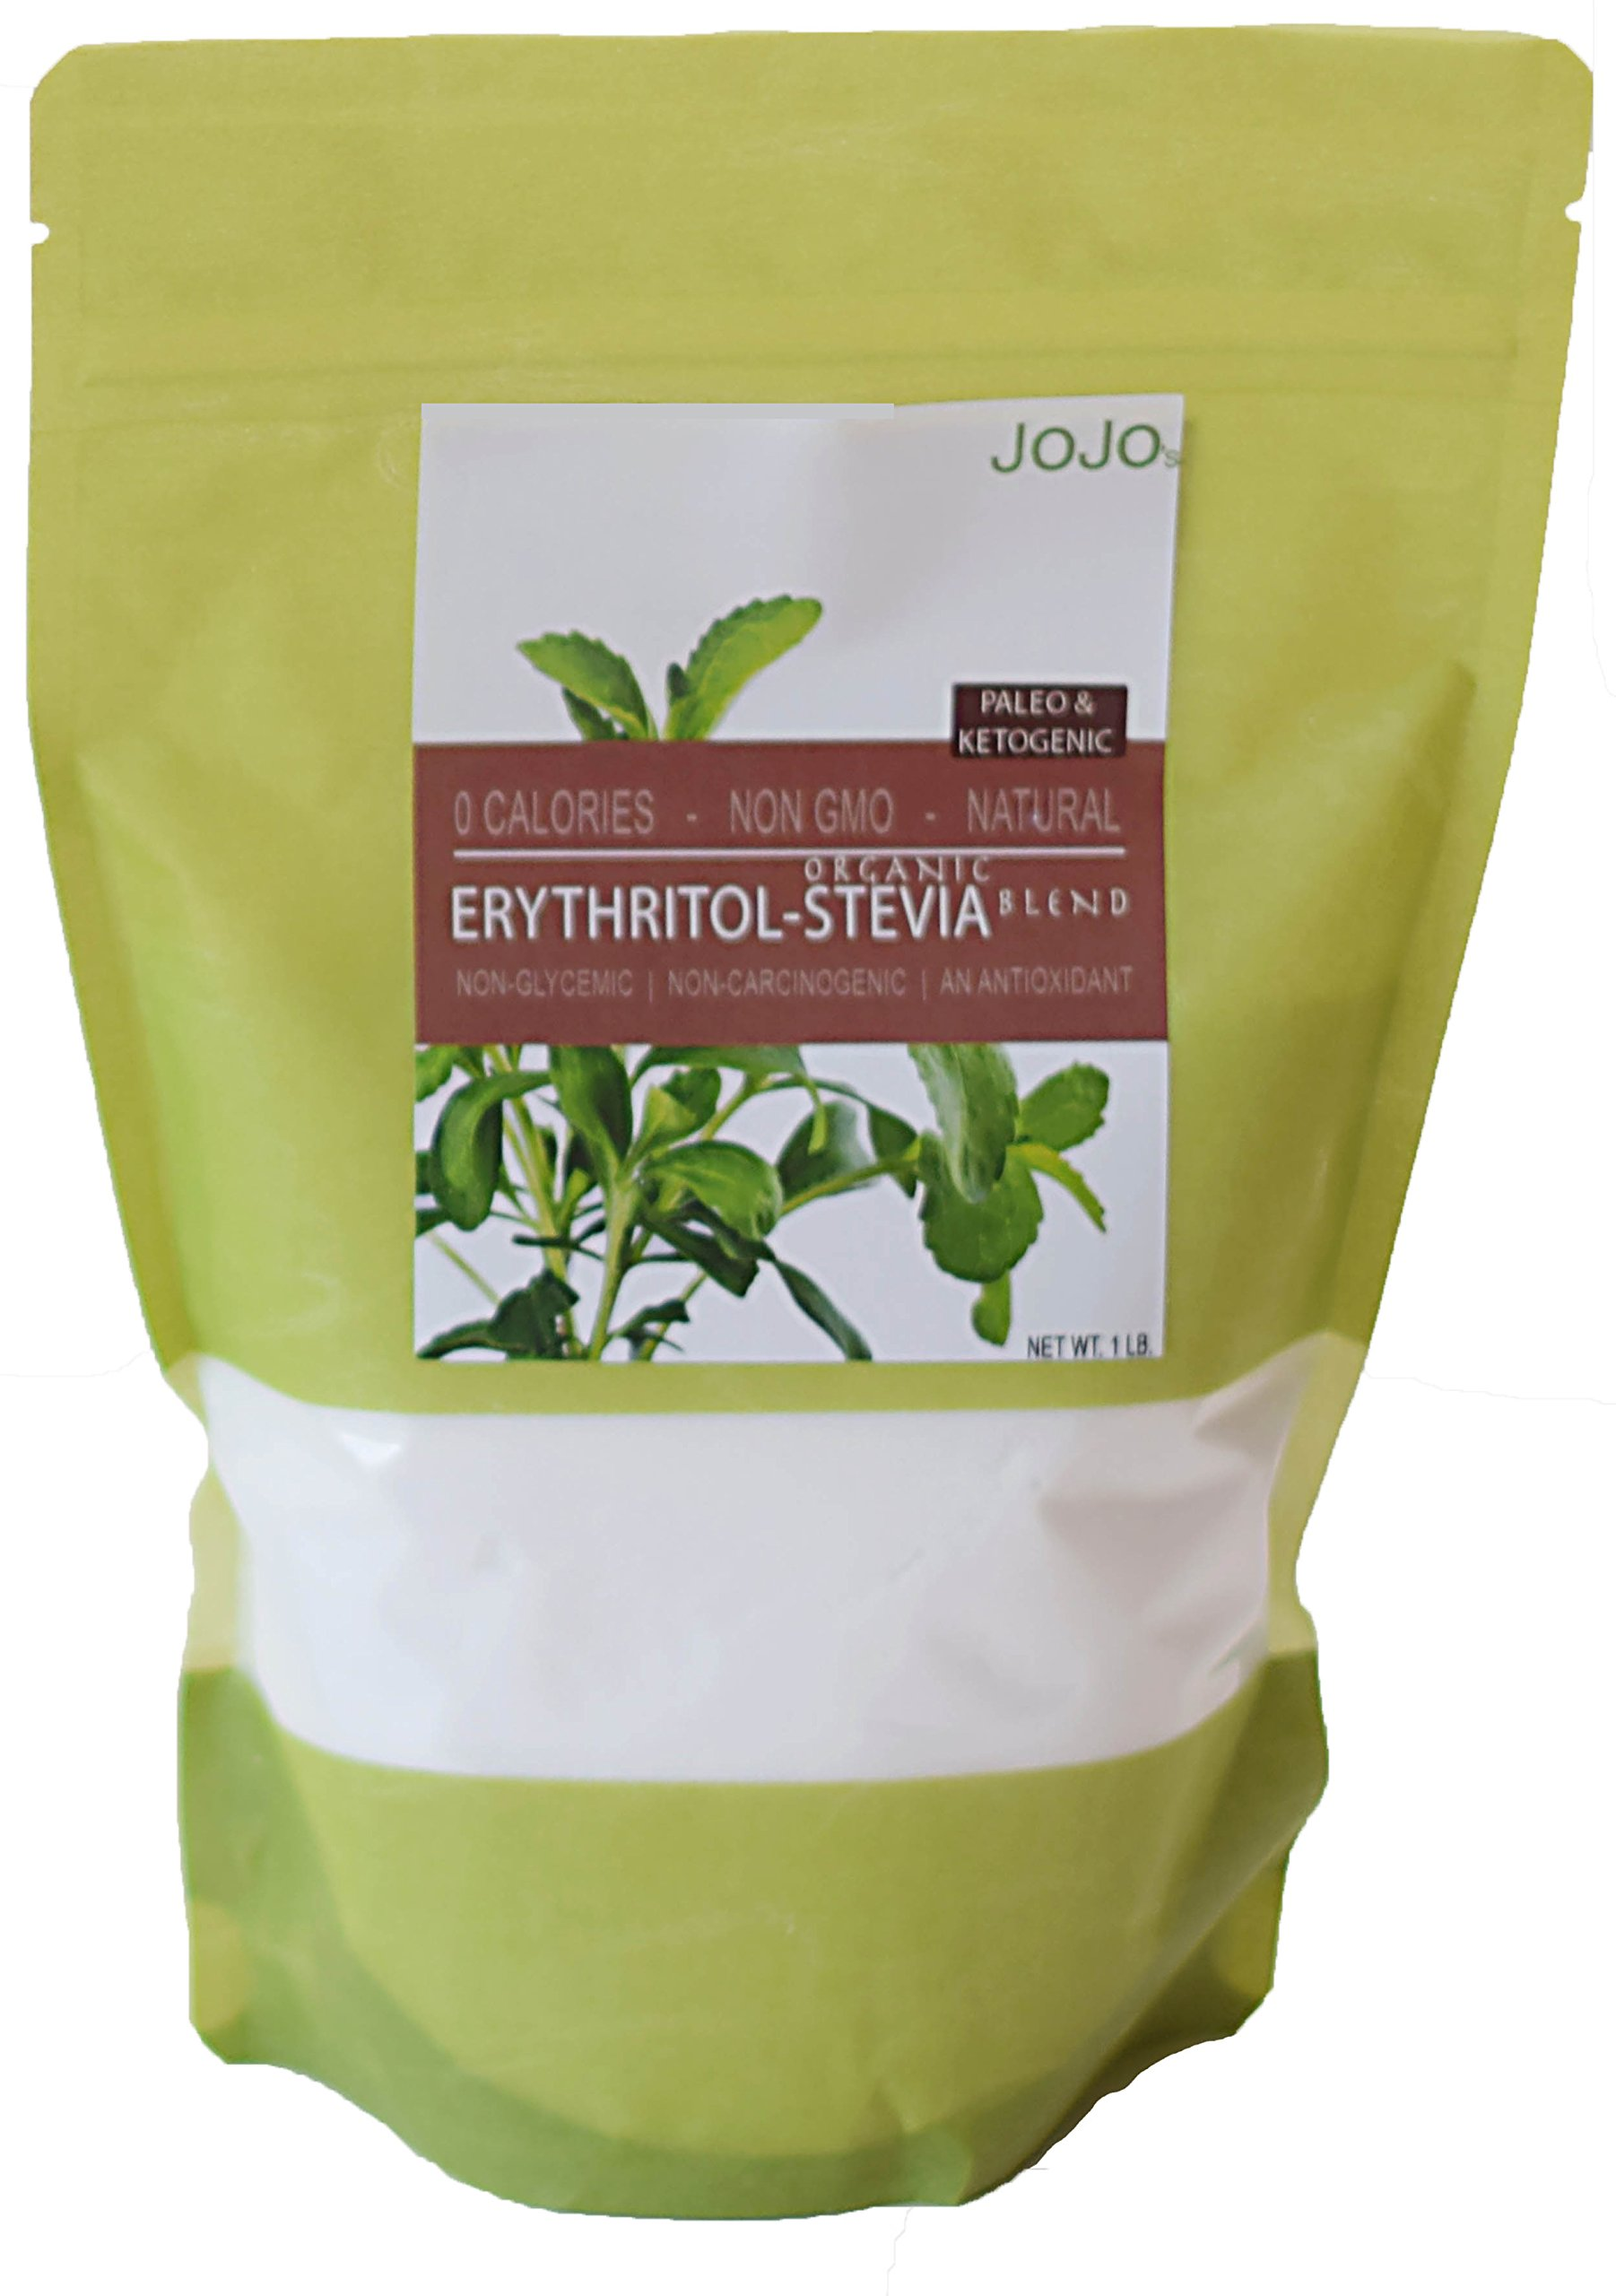 Erythritol Stevia Blend 1lb All Natural Organic Stevia Paleo Ketogenic Sweetener, 226 servings. Perfect for baking sugar free recipes + 5 Sugar Free Recipes Included With Your Order